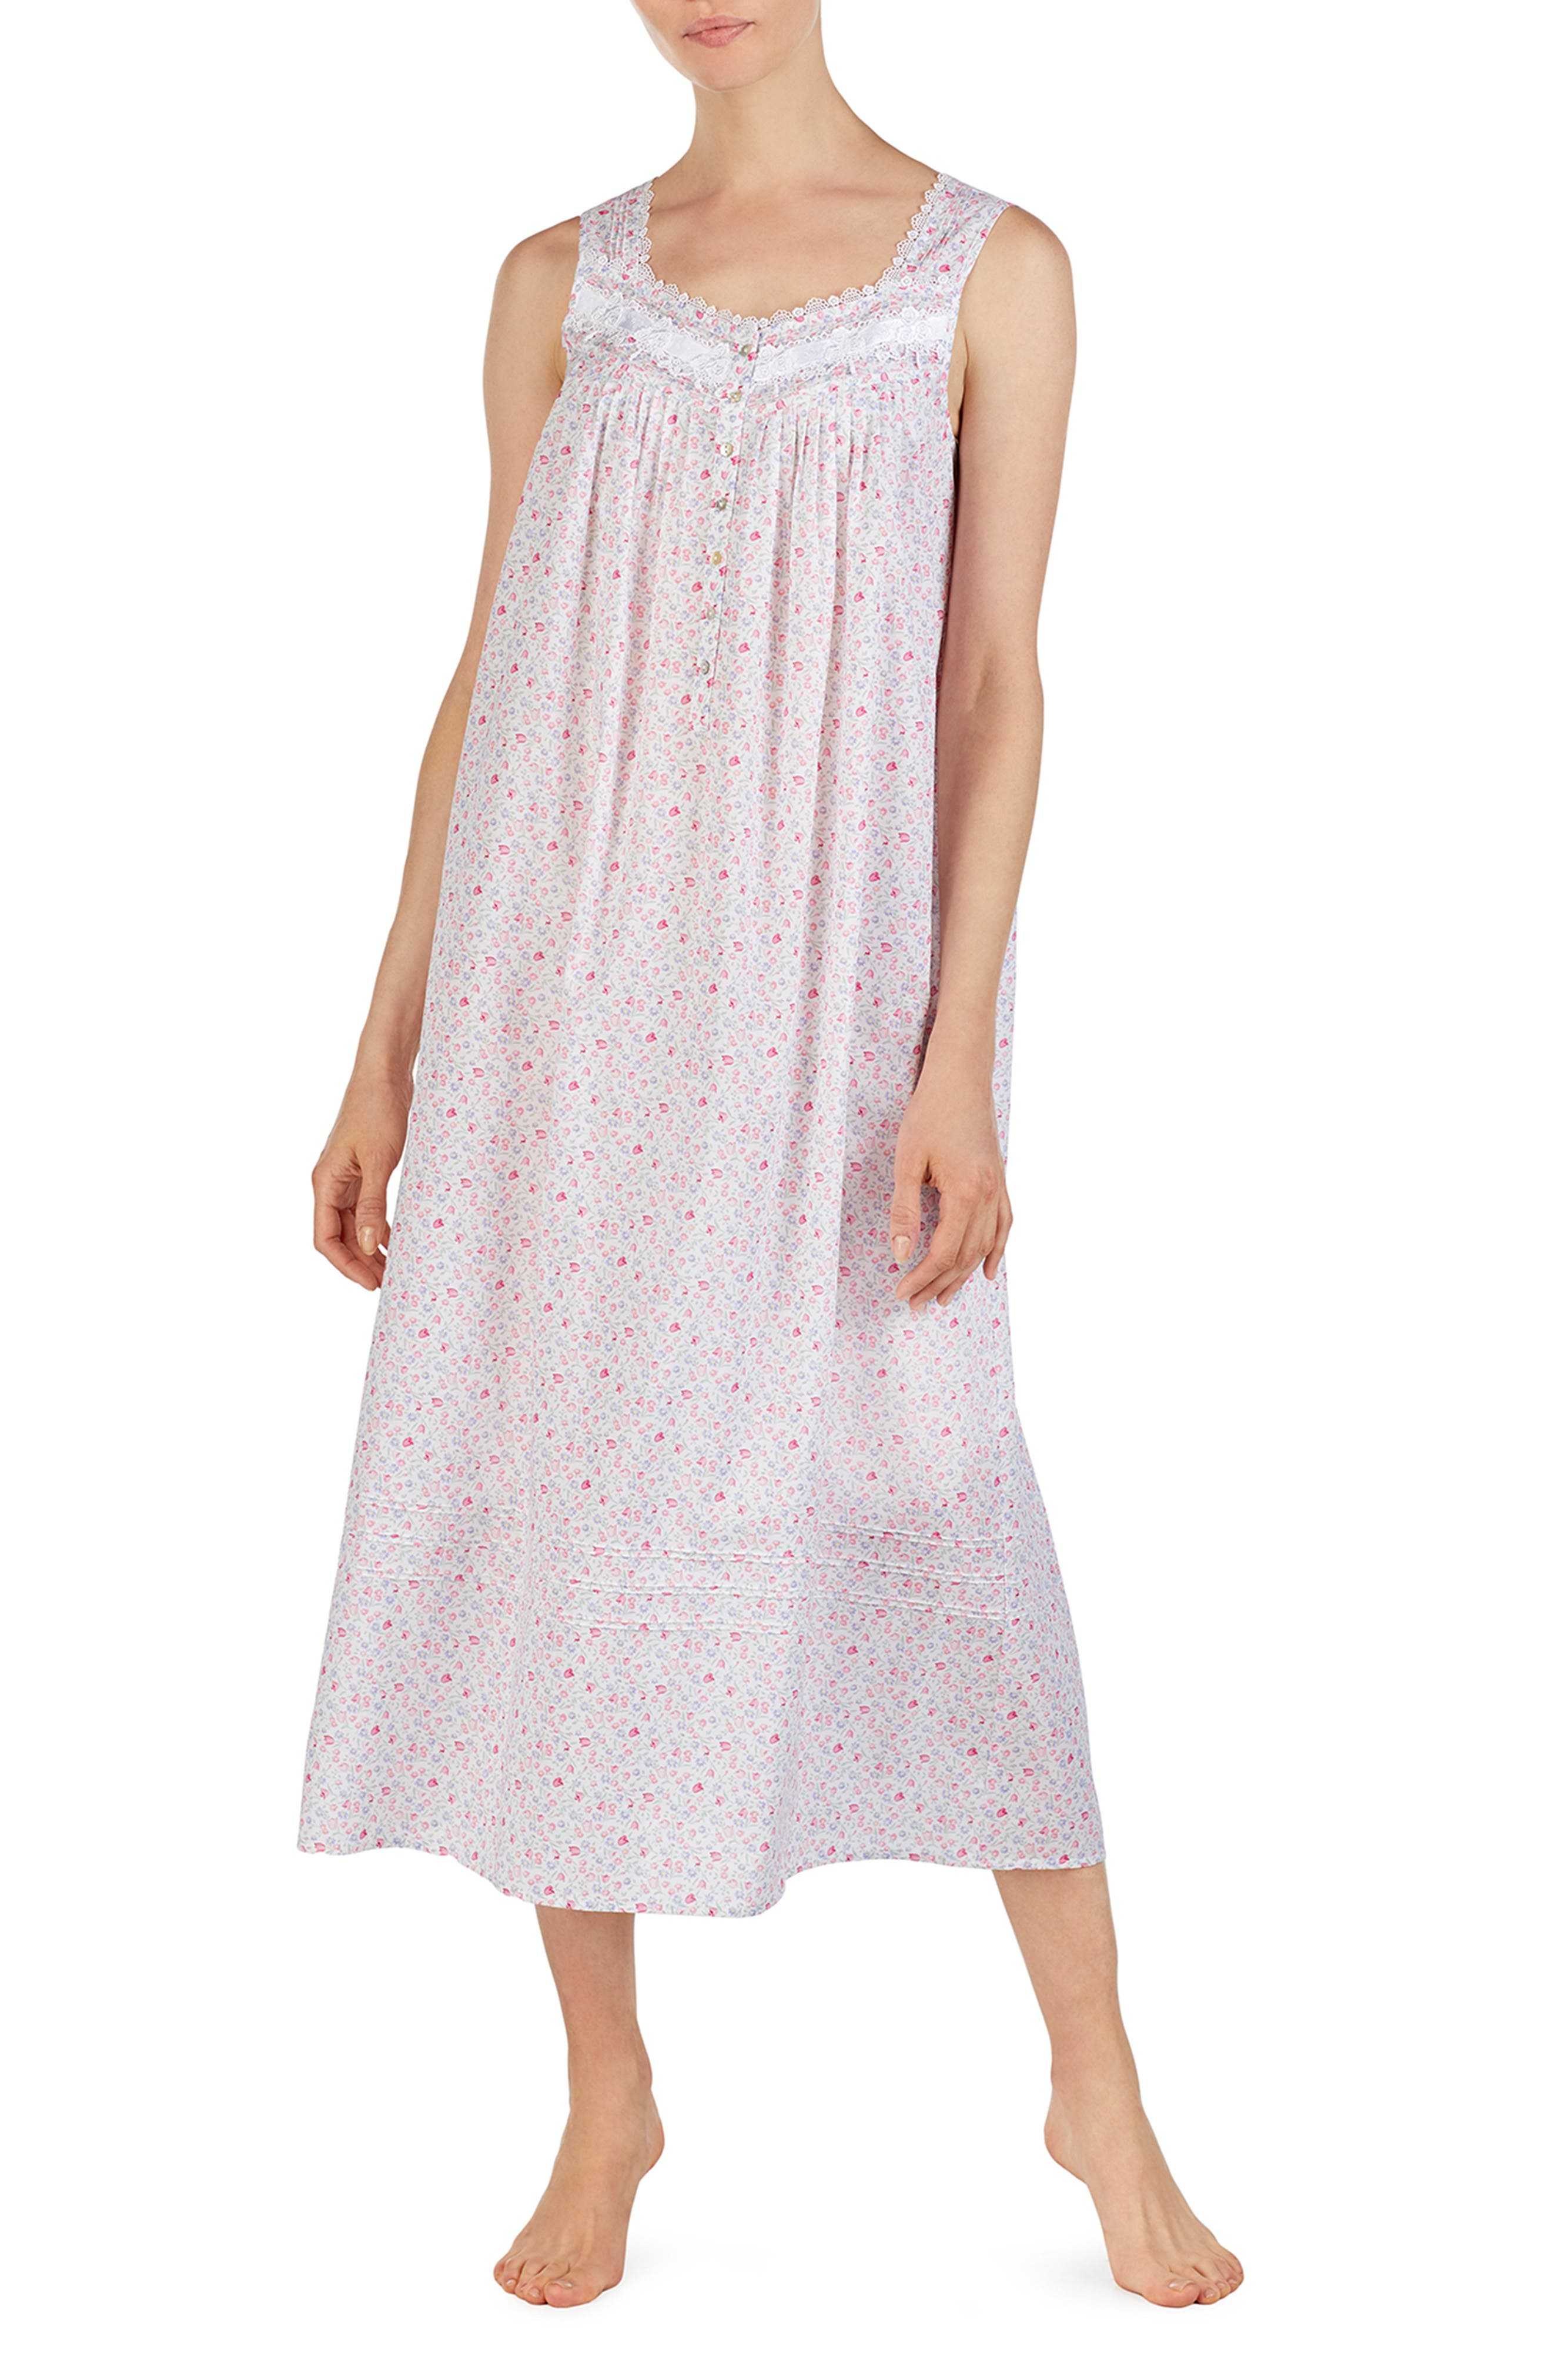 EILEEN WEST,                             Cotton Lawn Nightgown,                             Main thumbnail 1, color,                             MULTI DITSY